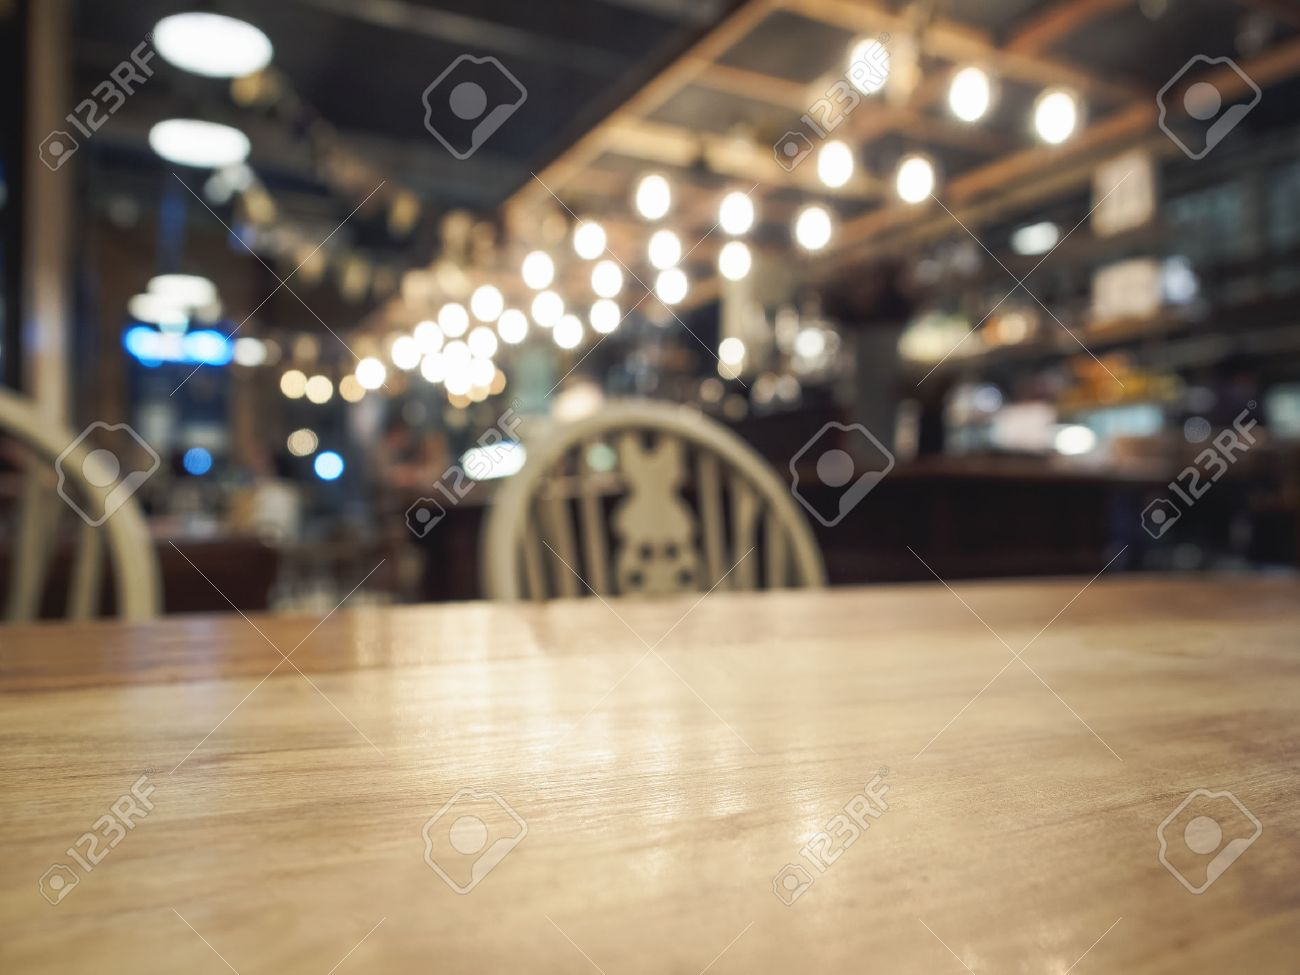 Dinner Table Background dinner table images & stock pictures. royalty free dinner table